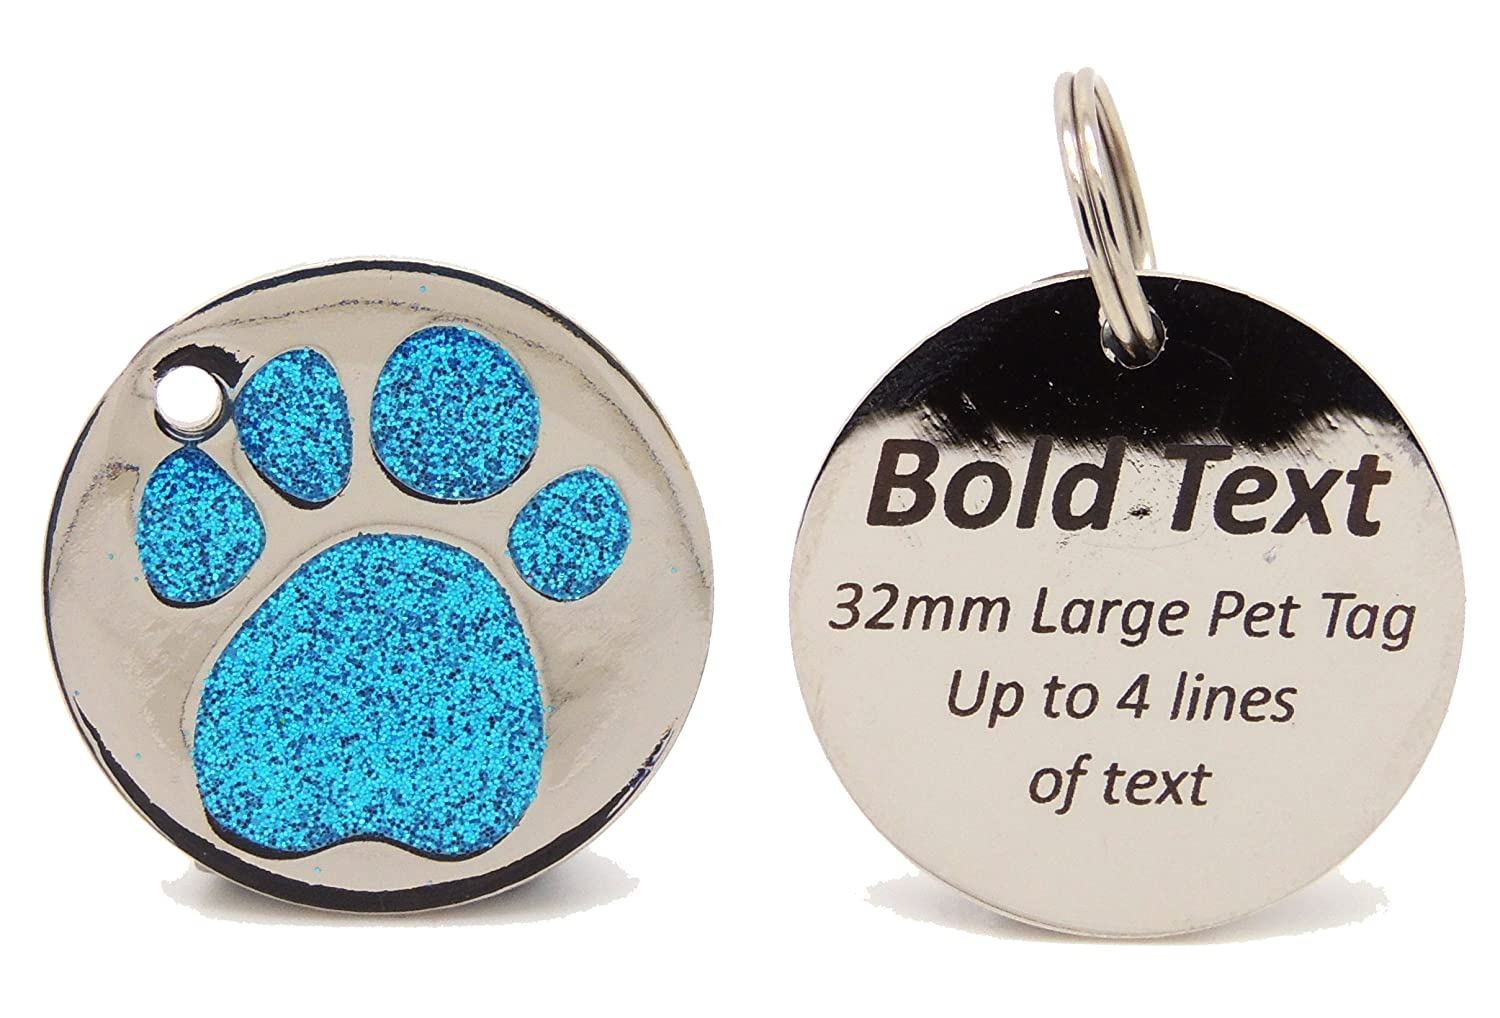 Personalised Engraved 32mm Glitter Paw Print Tag BOLD Contrasting Text, LARGE DOG Pet ID Tags (Black) Engravables